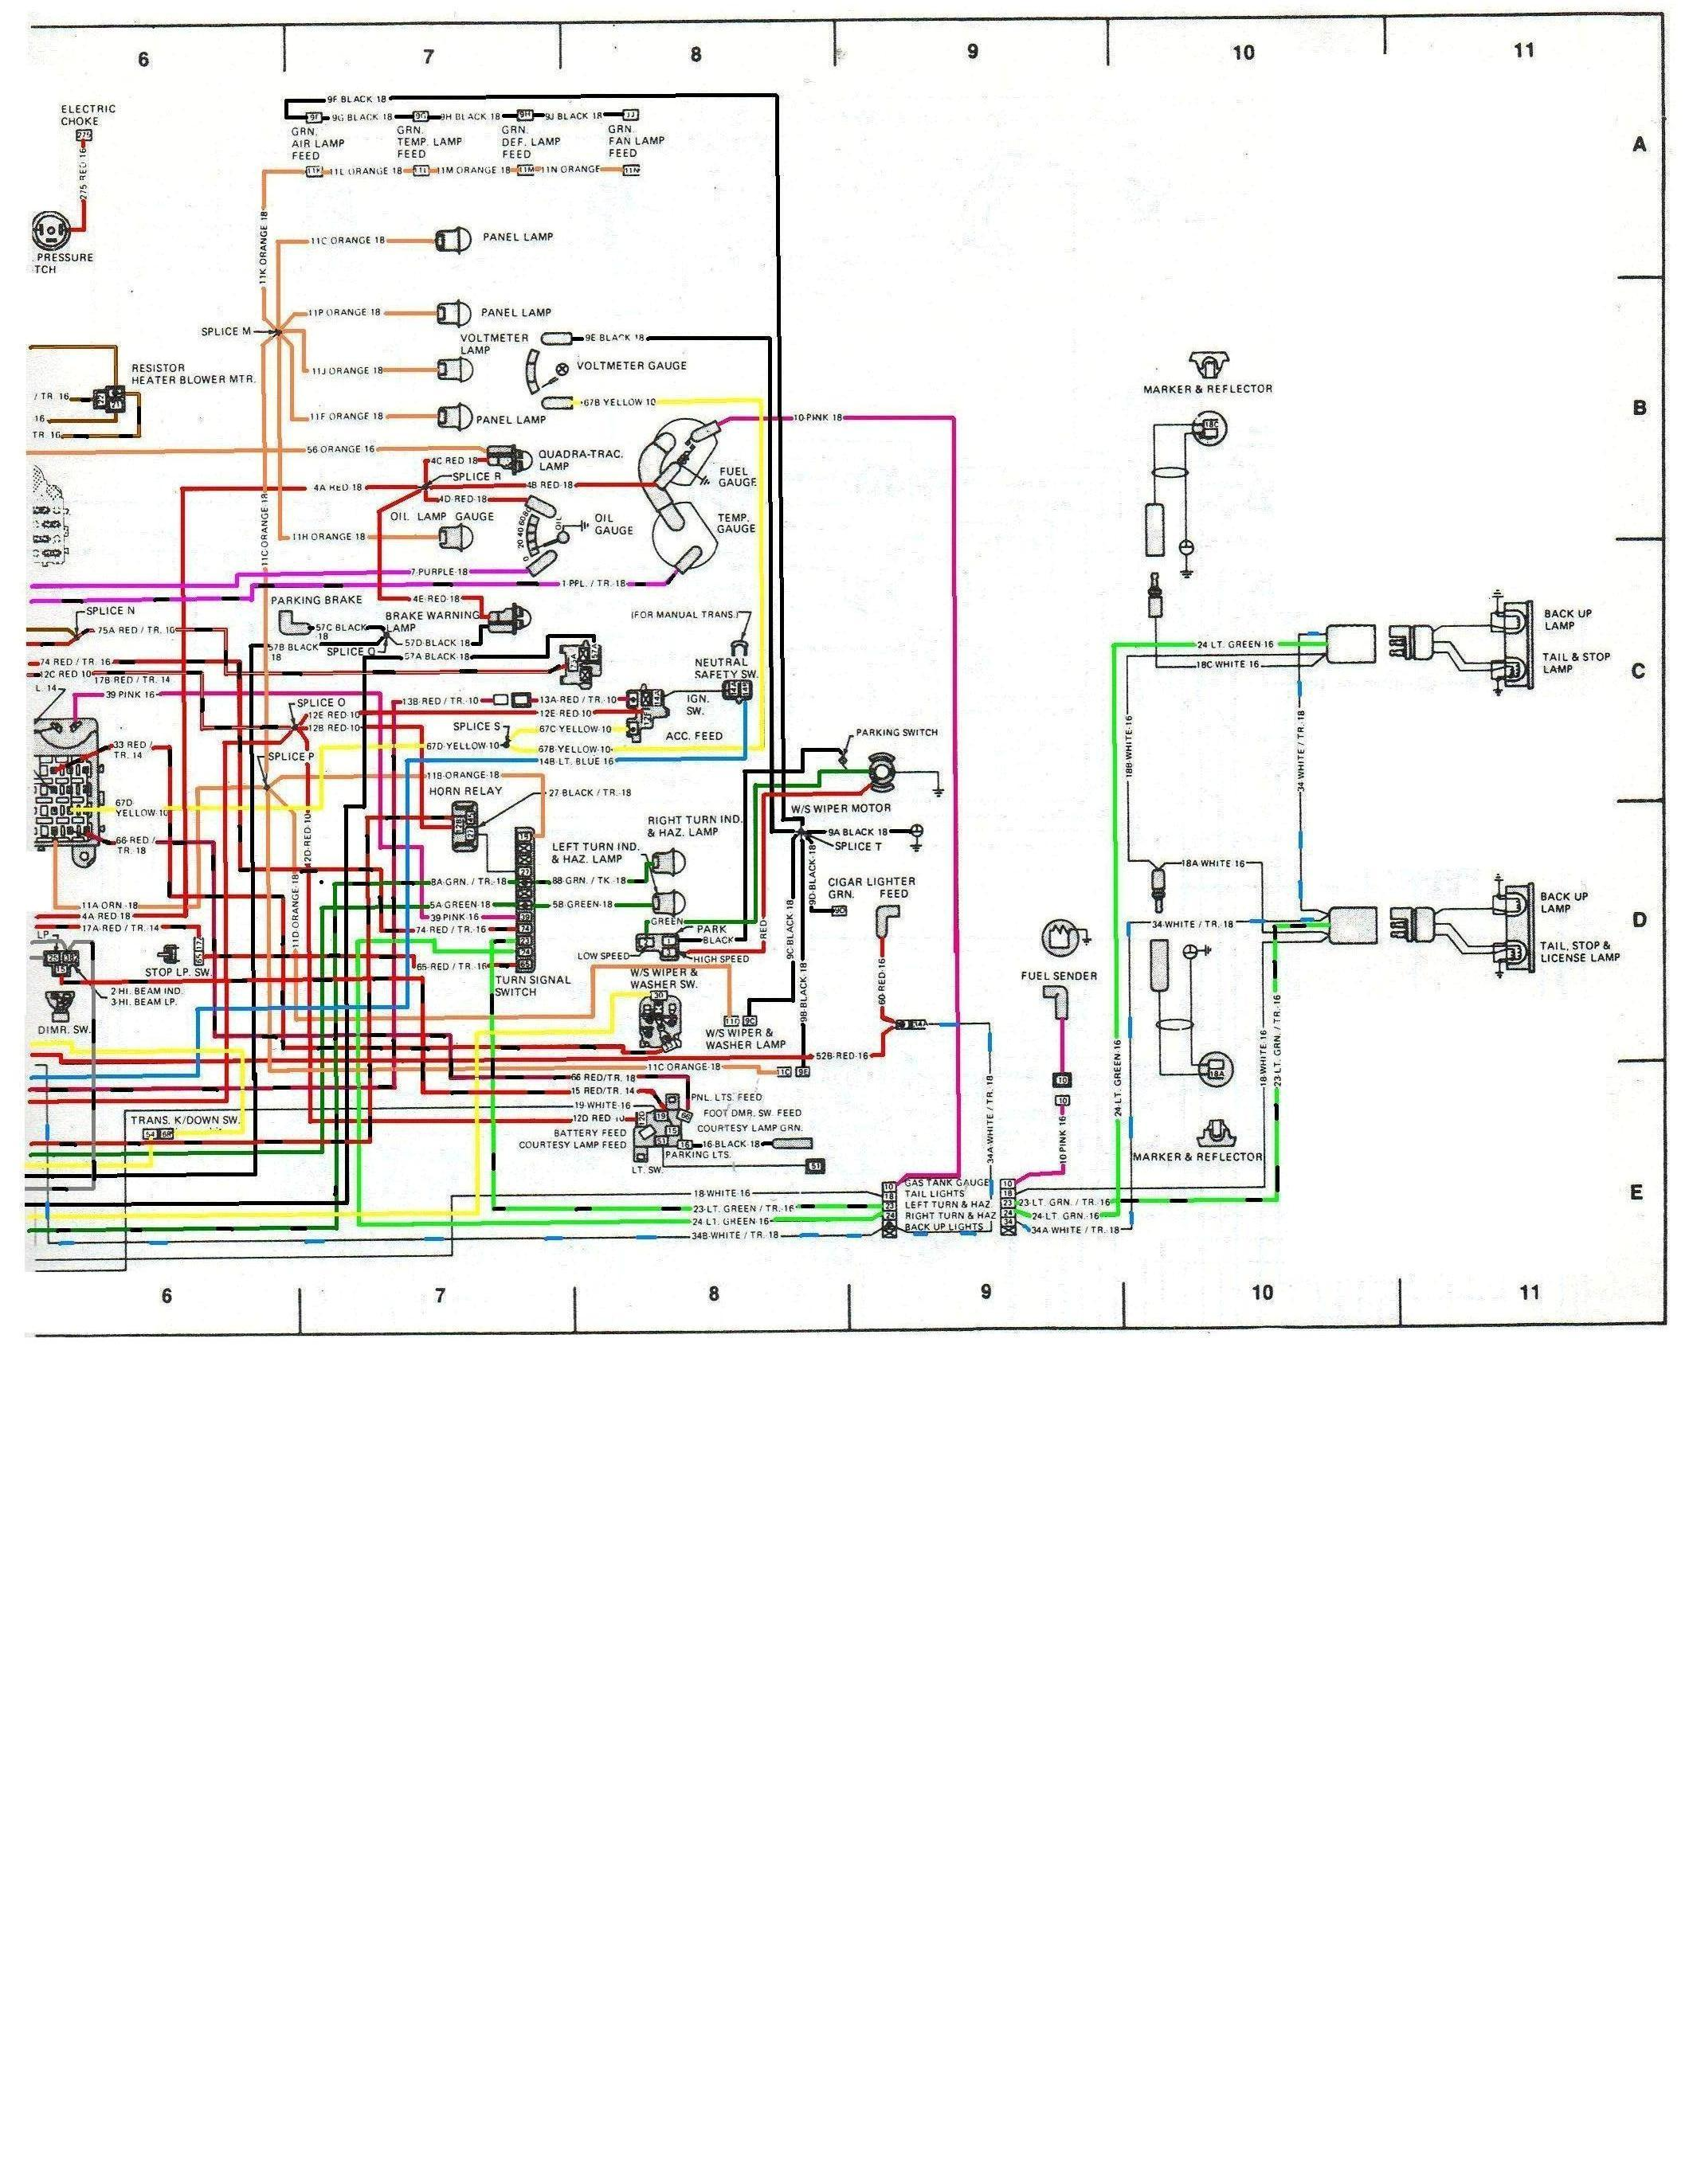 DIAGRAM] 1976 Cj7 Wiring Diagram FULL Version HD Quality Wiring Diagram -  JOBDIAGRAM.HOSTERIA87.ITDiagram Database